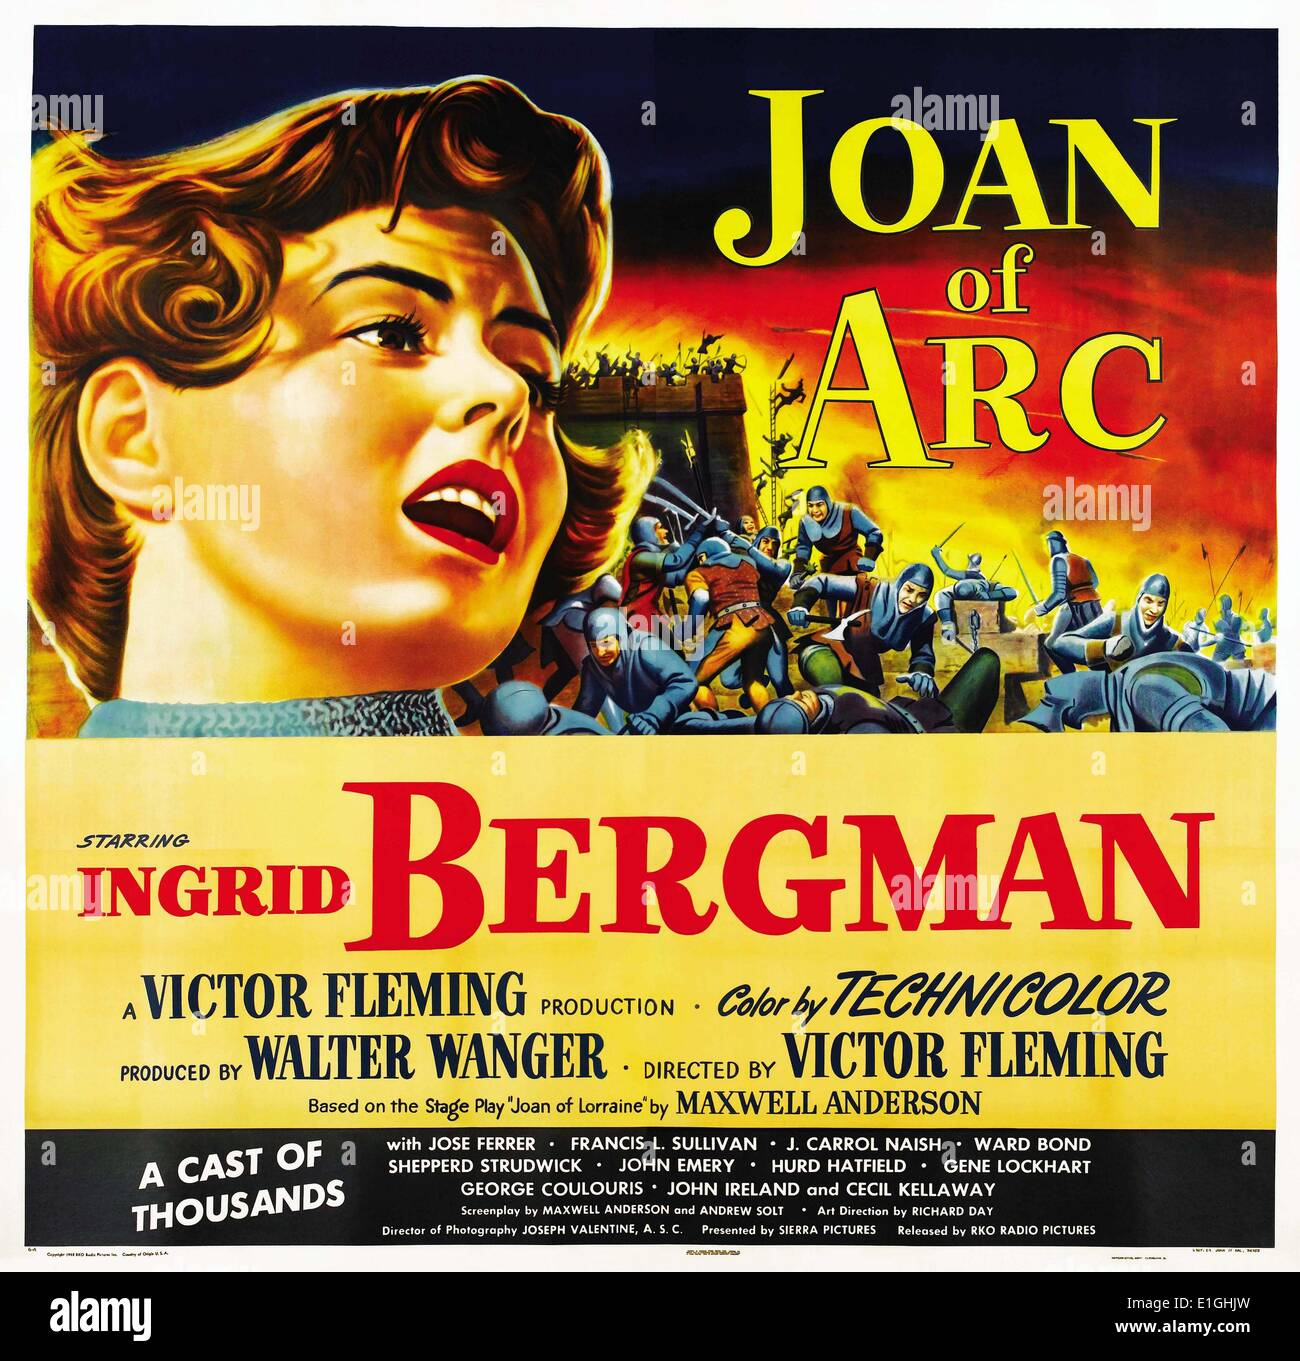 'Joan of Arc' a 1948 American epic historical drama film starring Ingrid Bergman. - Stock Image